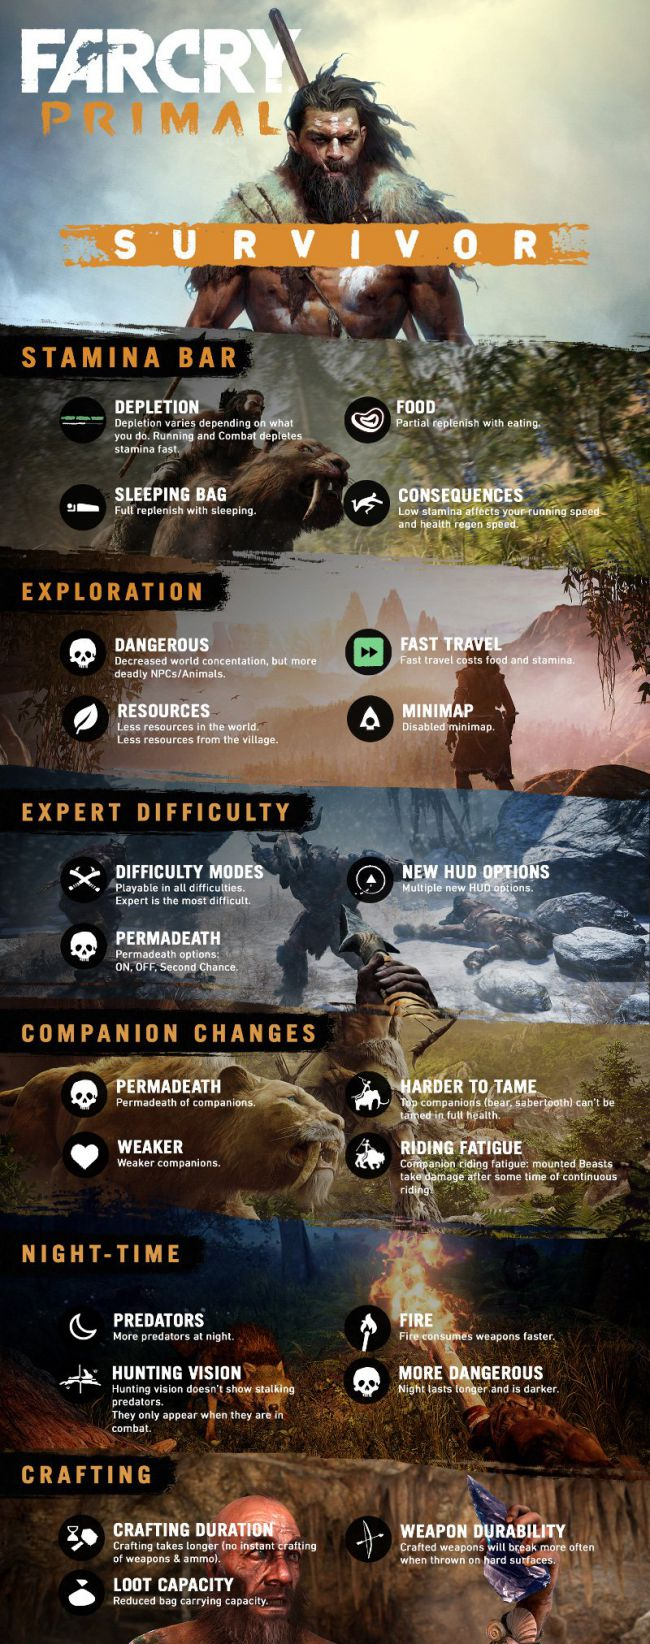 Far Cry Primal Survivor Mode Launches With New Details Confirmed